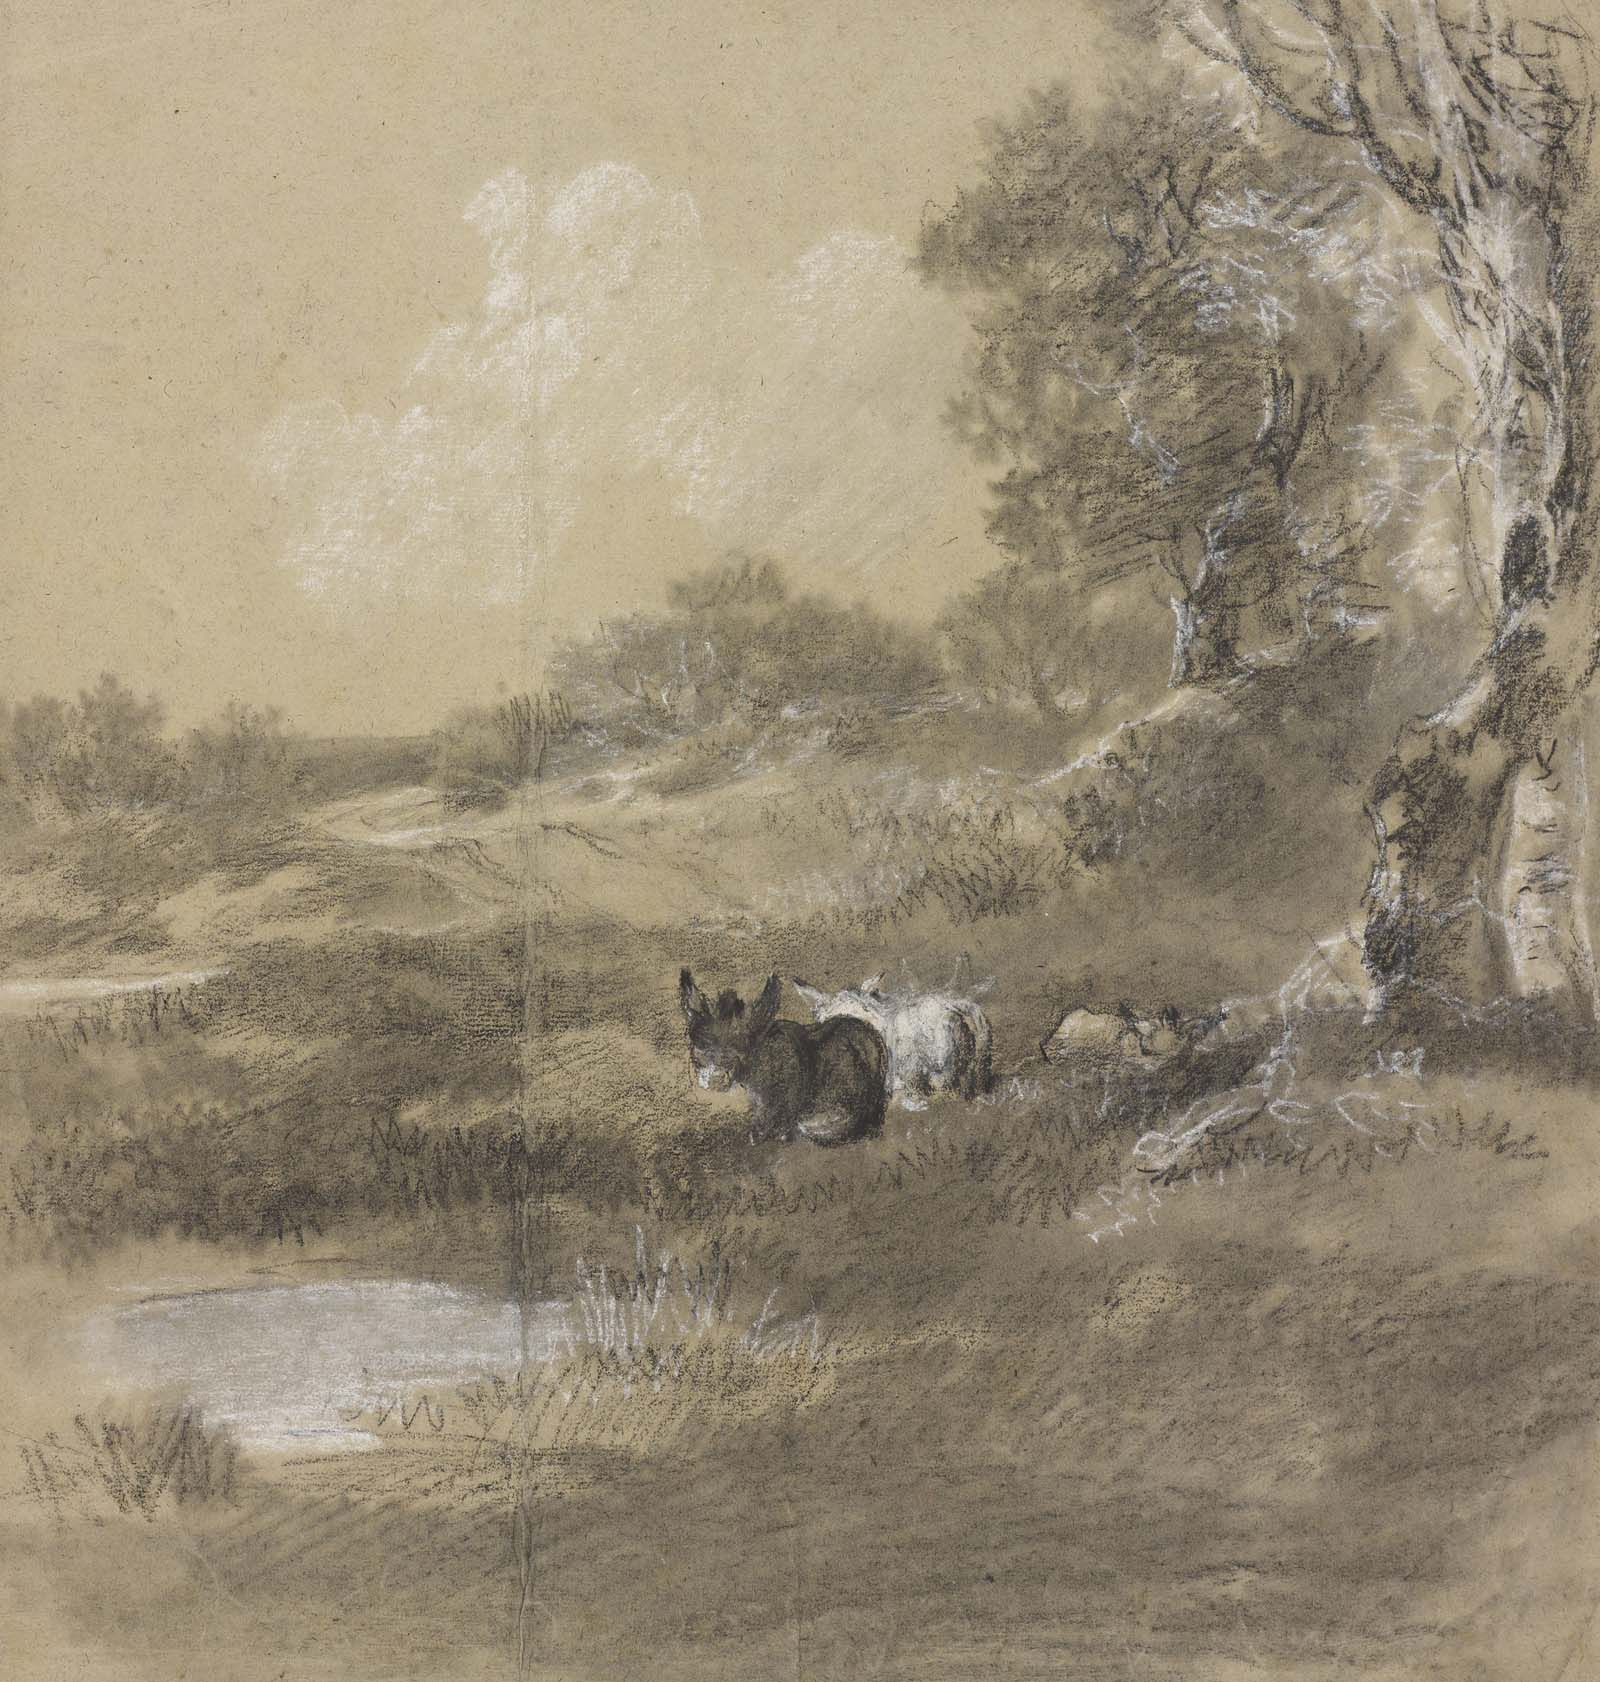 sketch of a wooded landscape with two donkeys